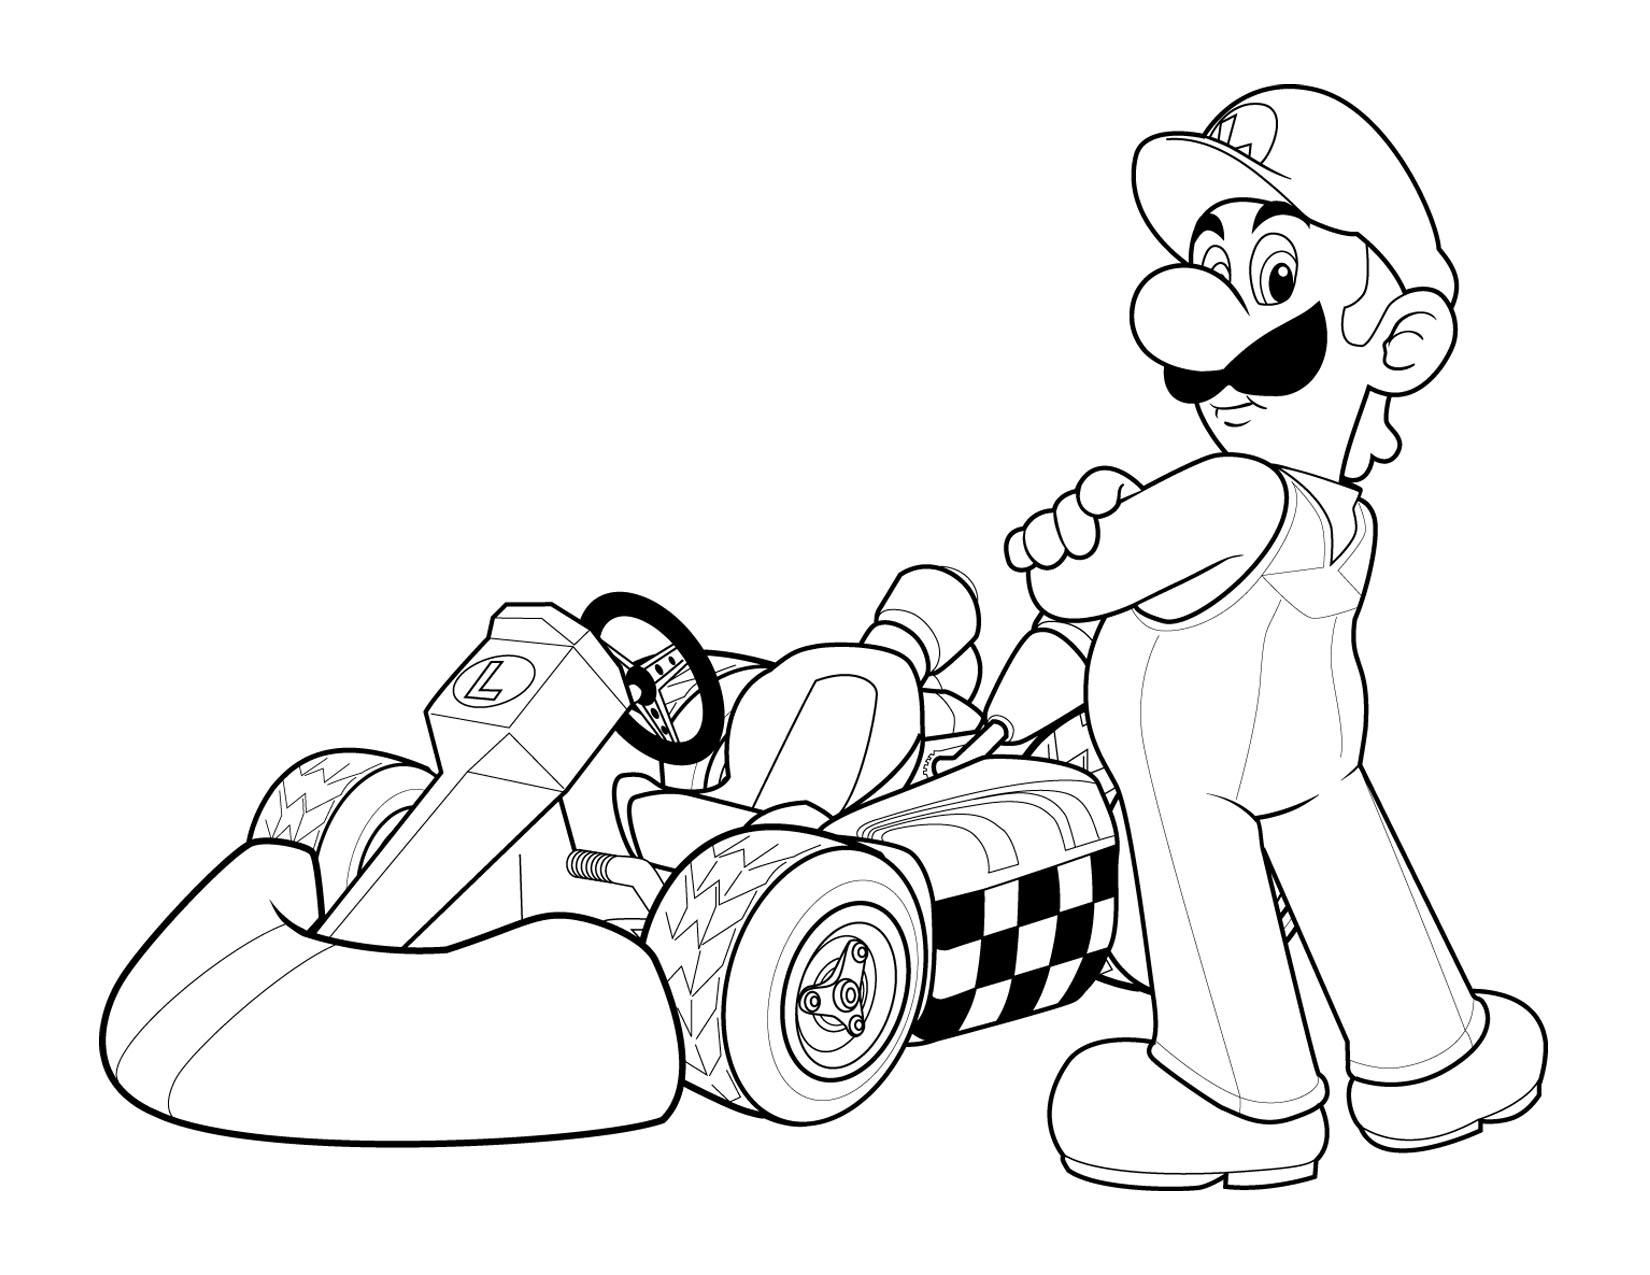 Free Printable Mario Coloring Pages For Kids Coloriage Mario Coloriage Mario Kart Coloriage